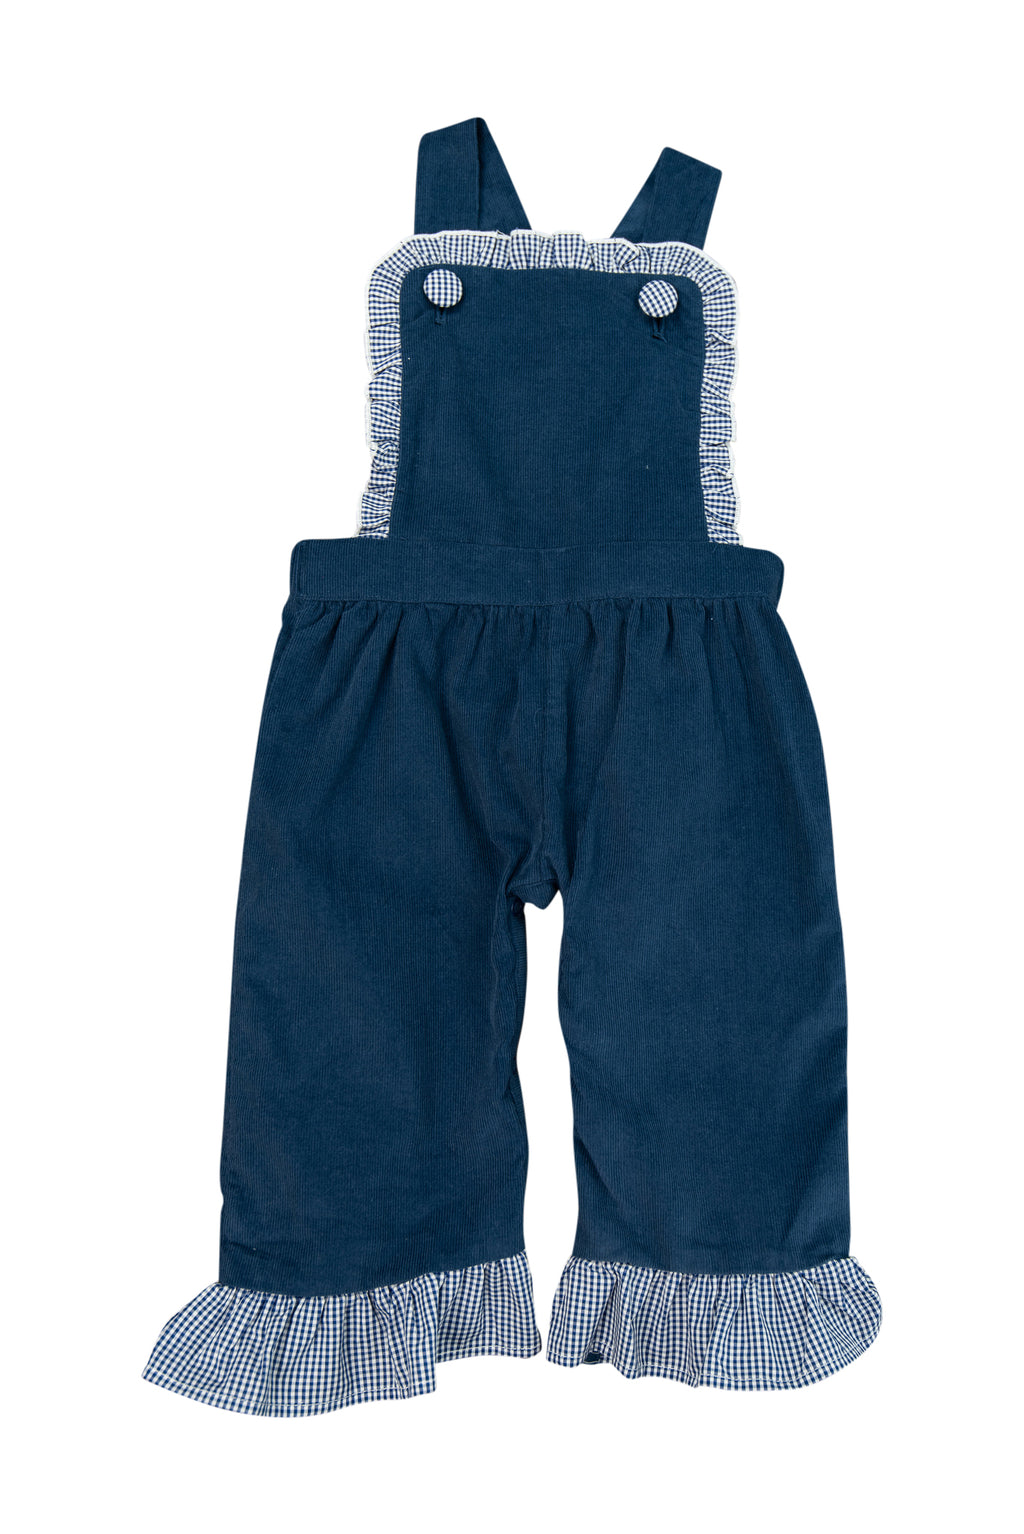 Girls Navy Corduroy/Gingham Romper